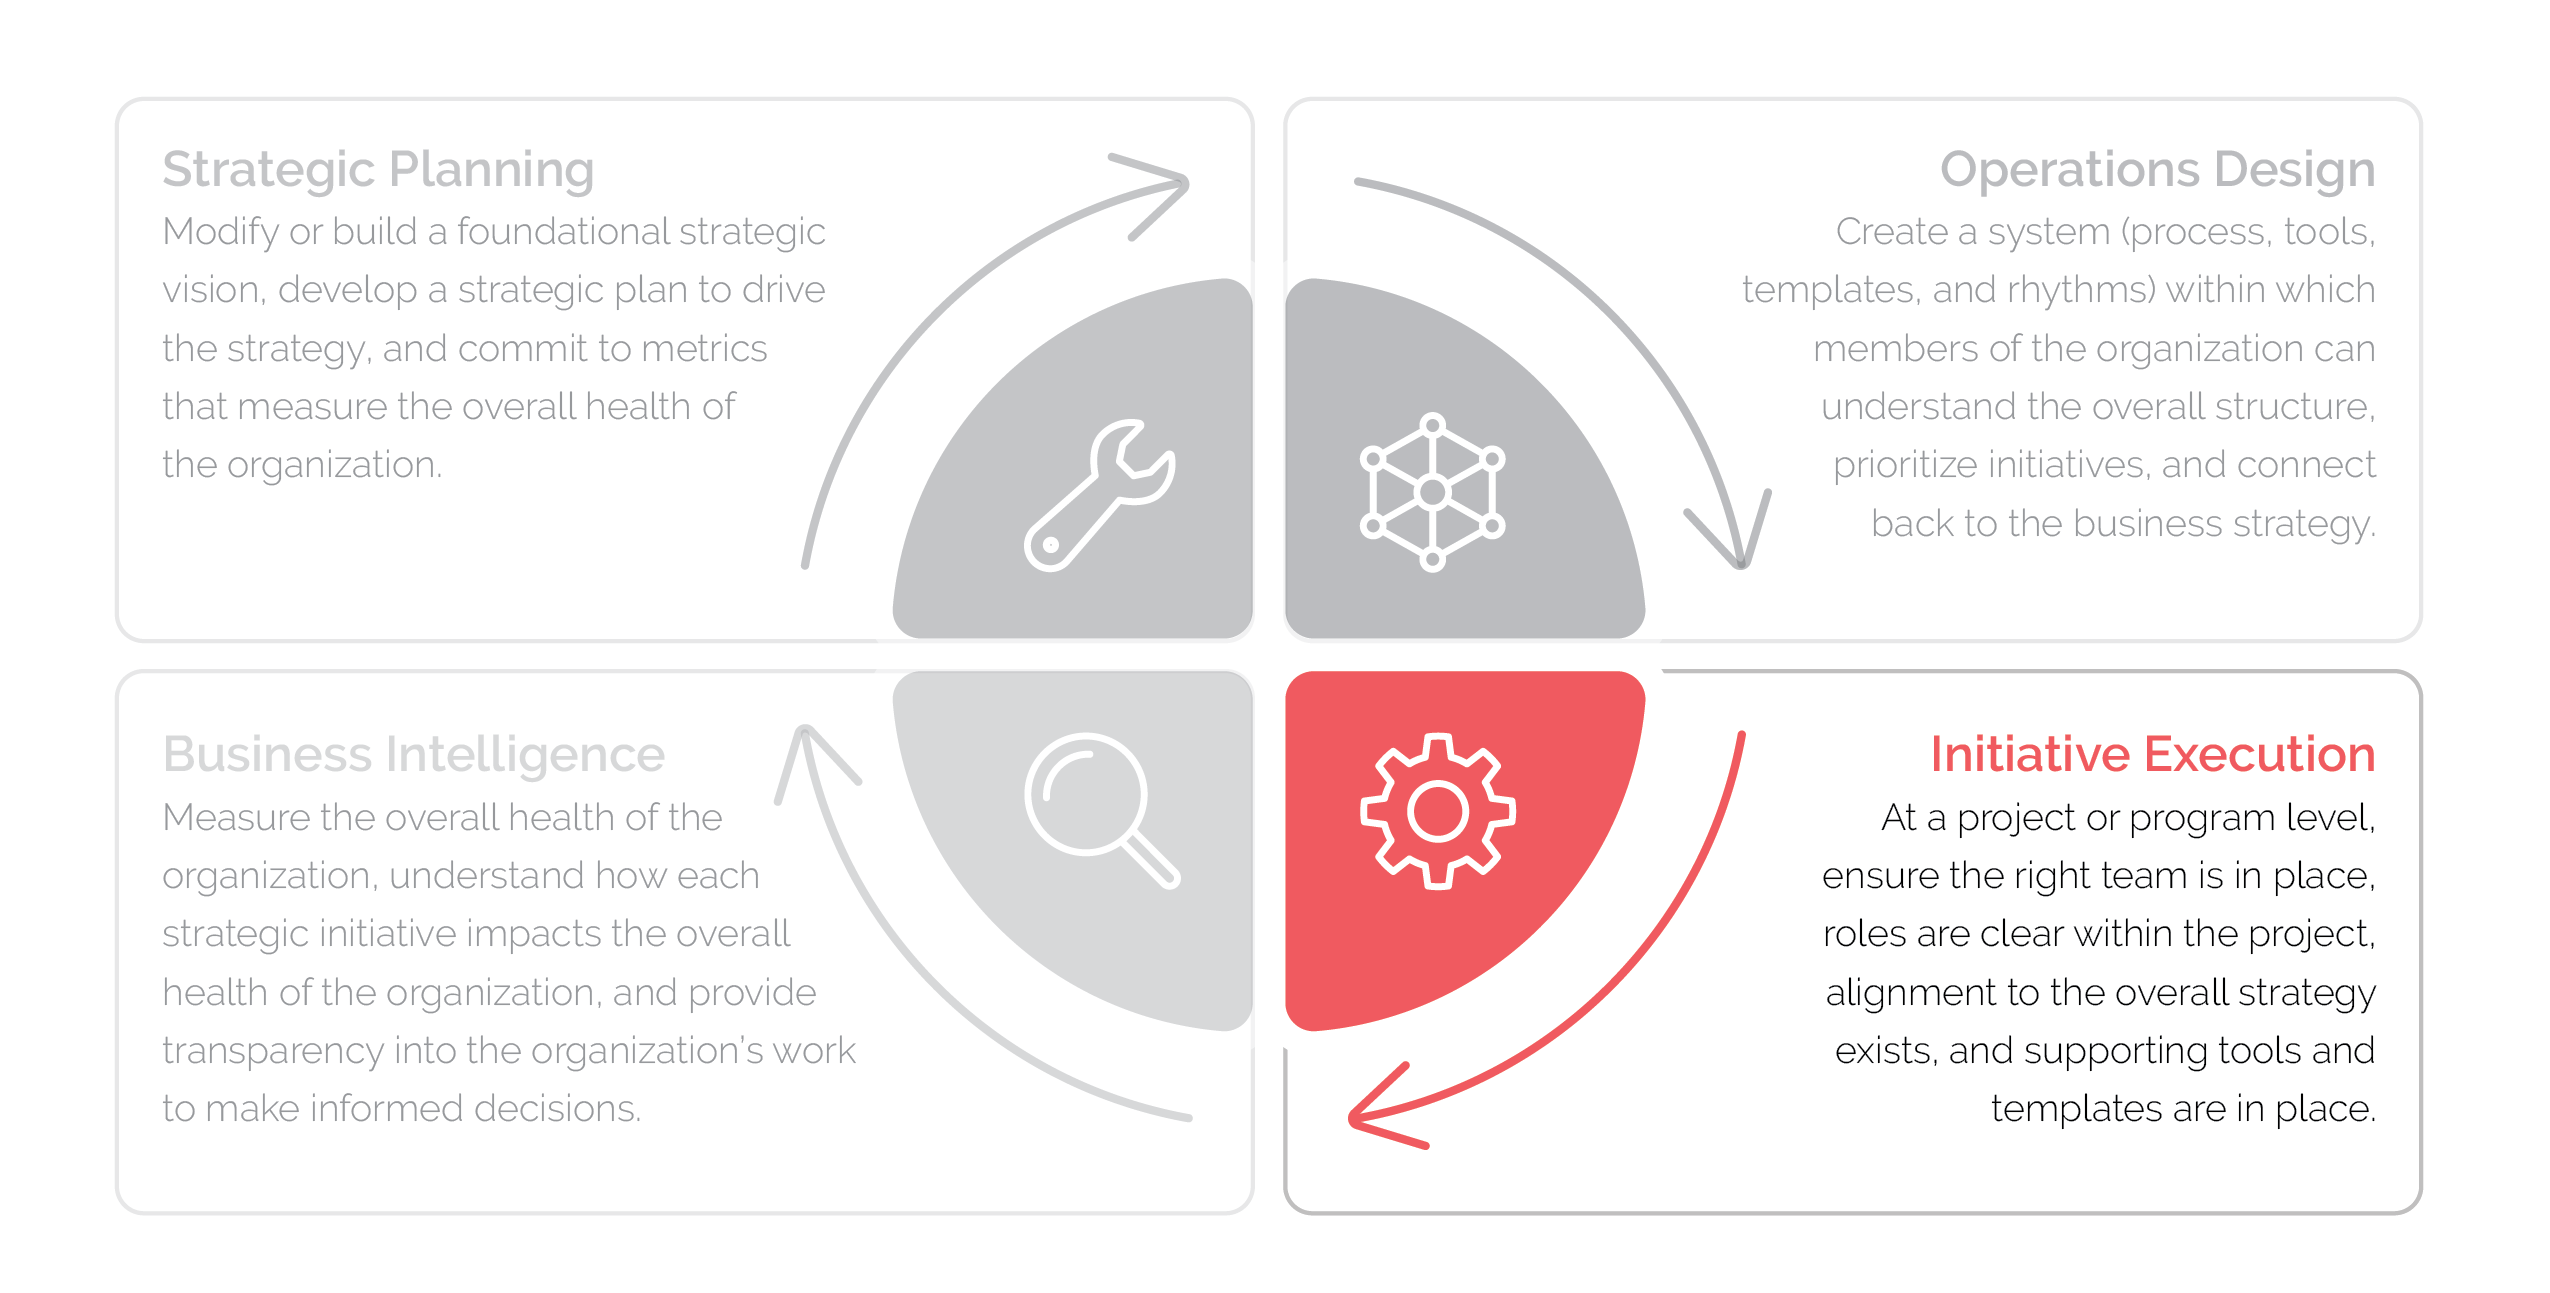 Graphic of the four steps of business operations: strategic planning, operations, design, initiative execution and business intelligence, with an emphasis on initiative execution